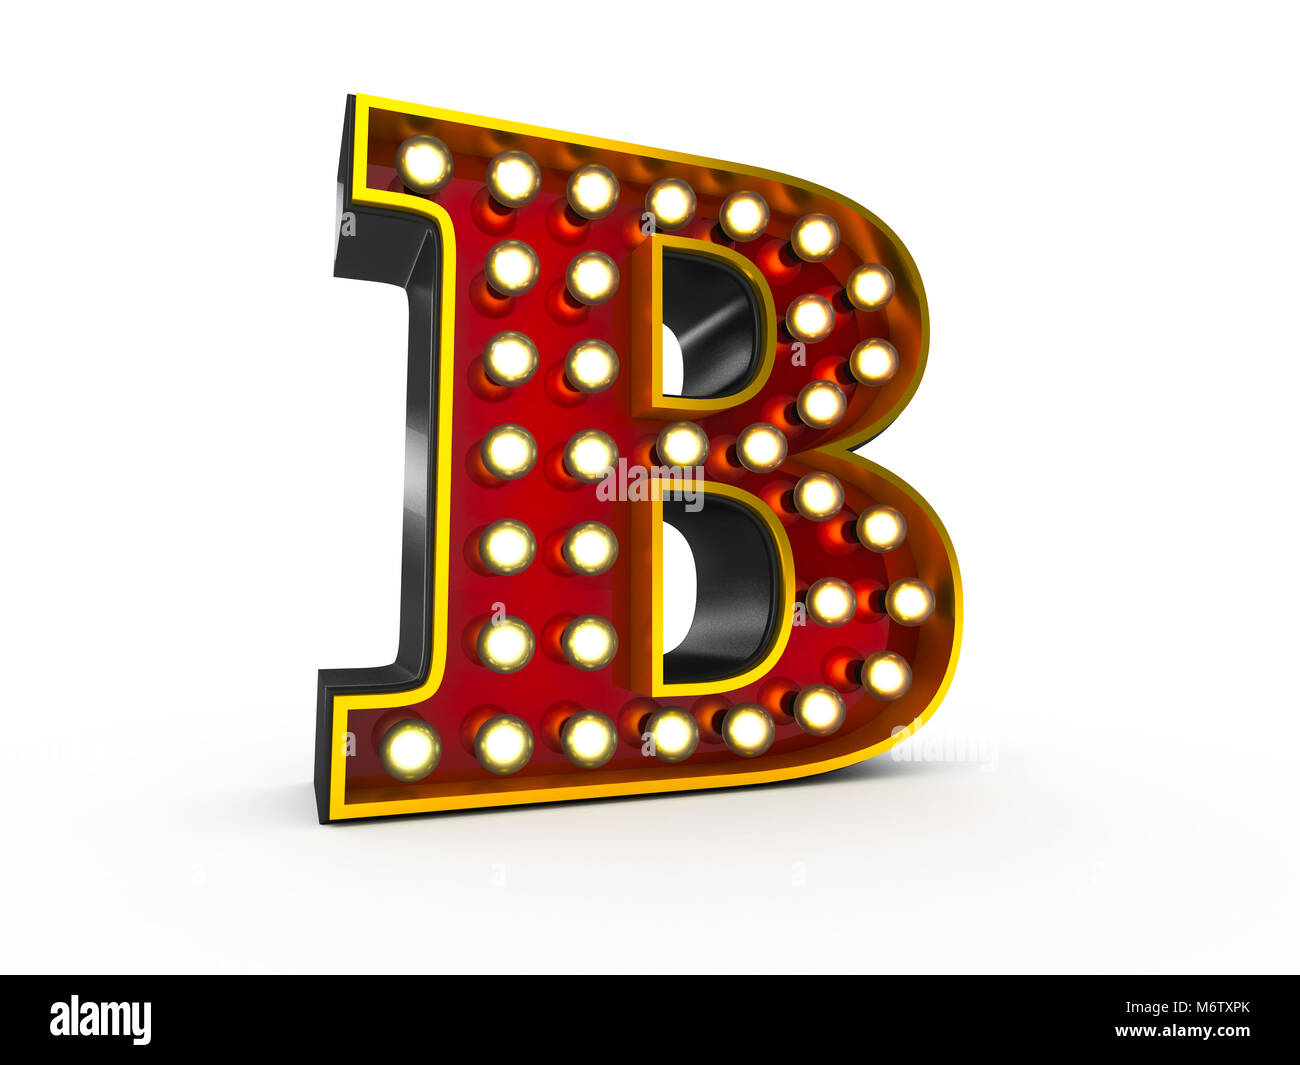 High quality 3D illustration of the letter B in Broadway style with light bulbs illuminating it over white background - Stock Image